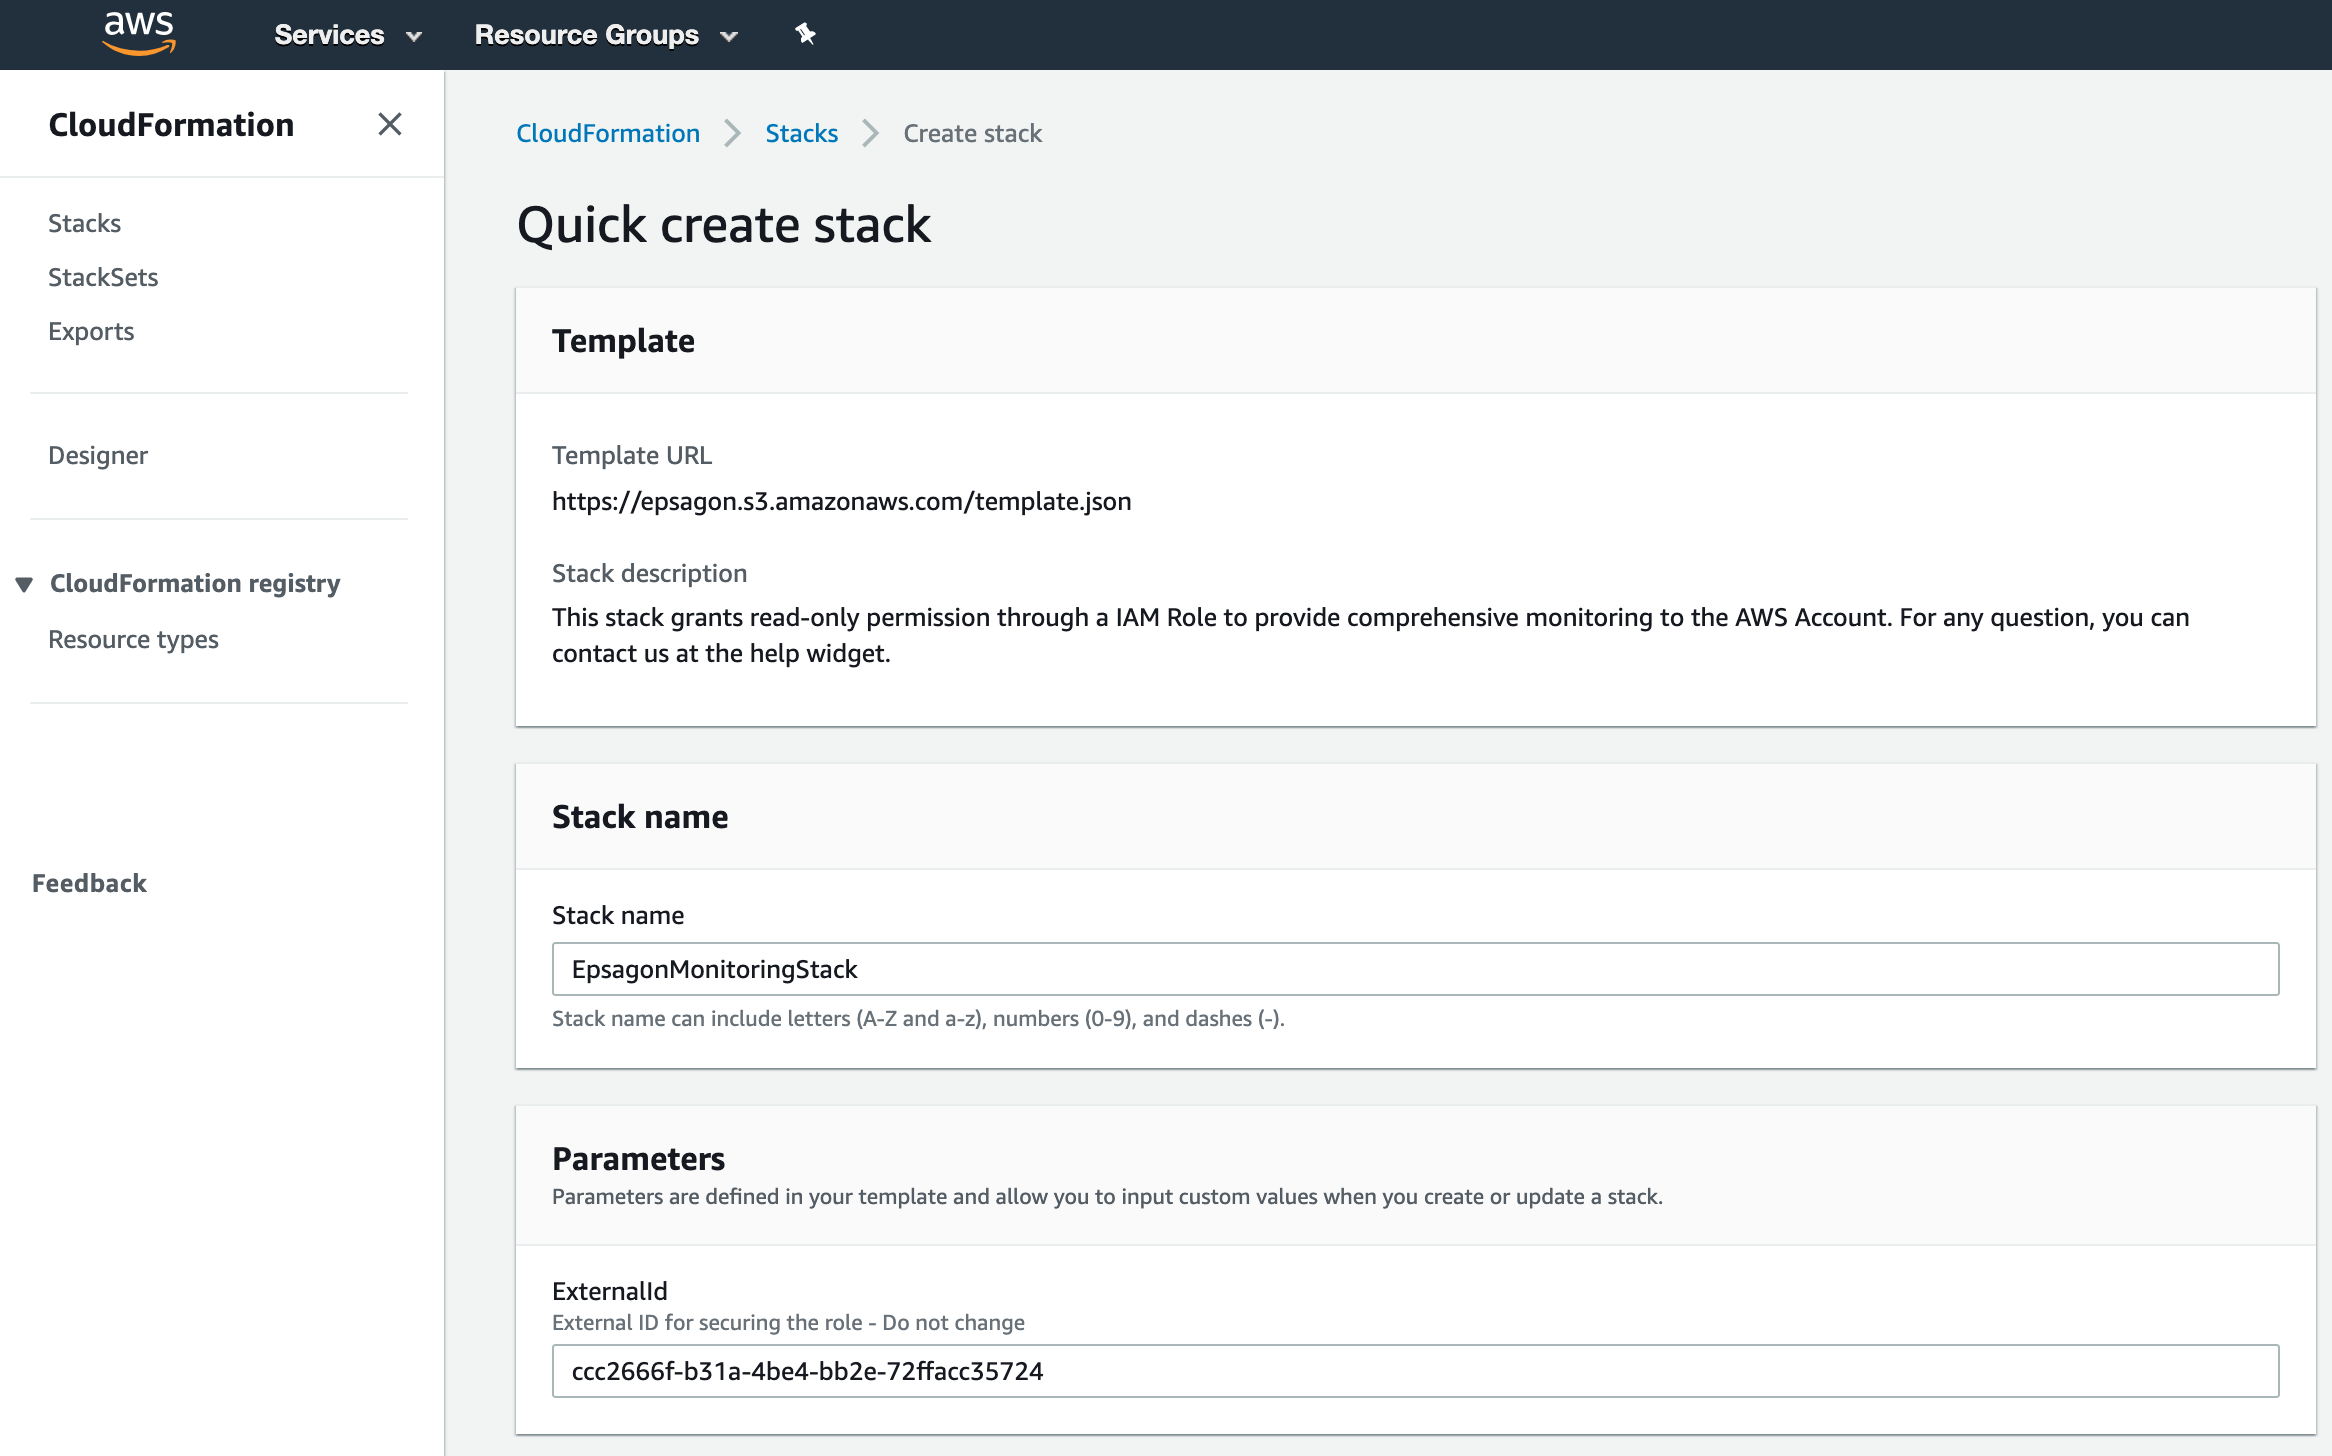 The Quick create stack tag on your AWS account. No need to change any parameter